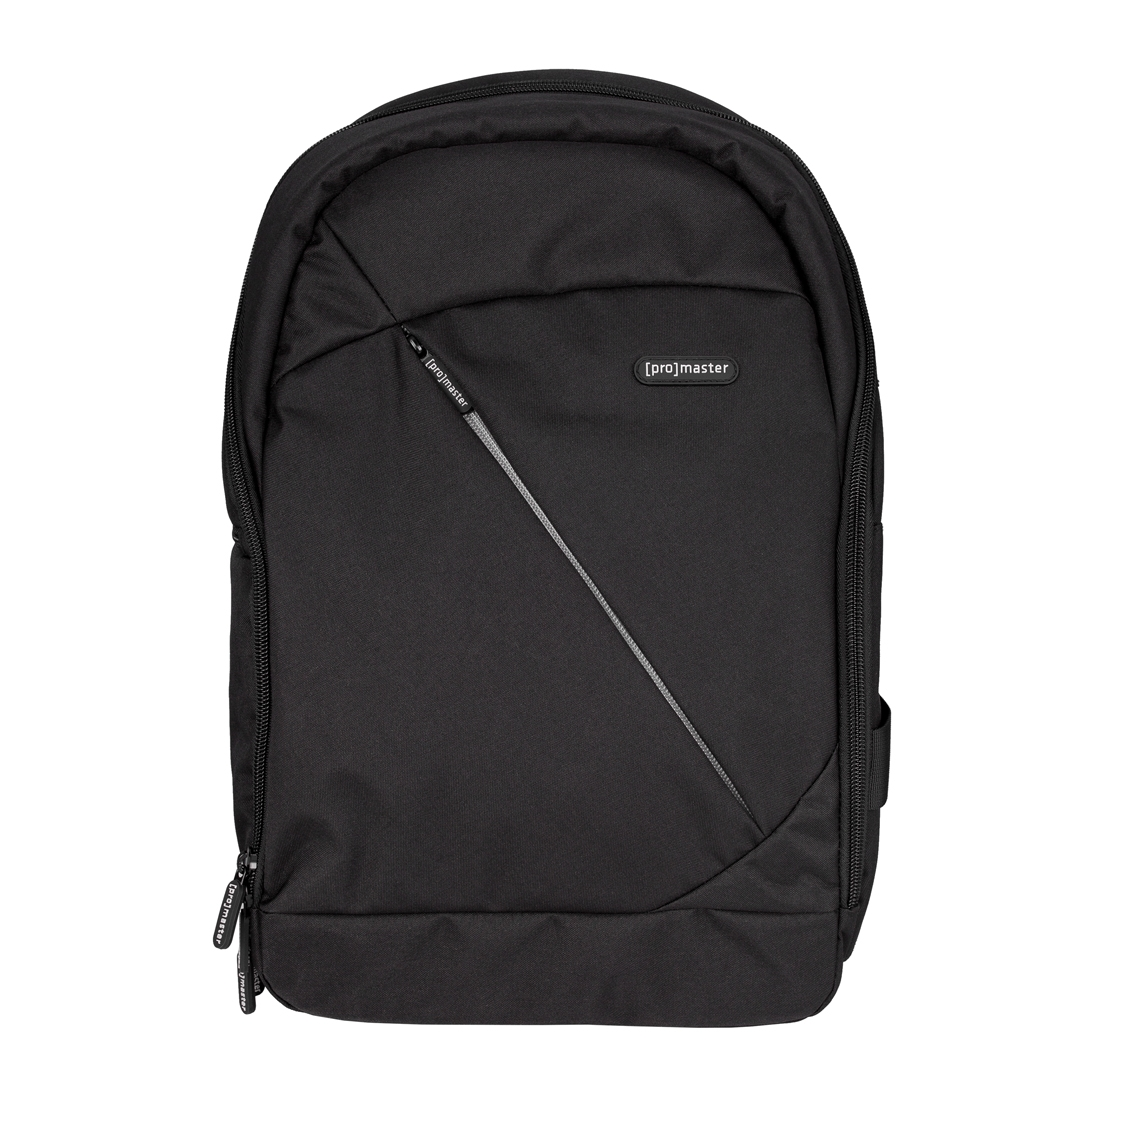 Promaster Impulse Sling Bag Large (black)